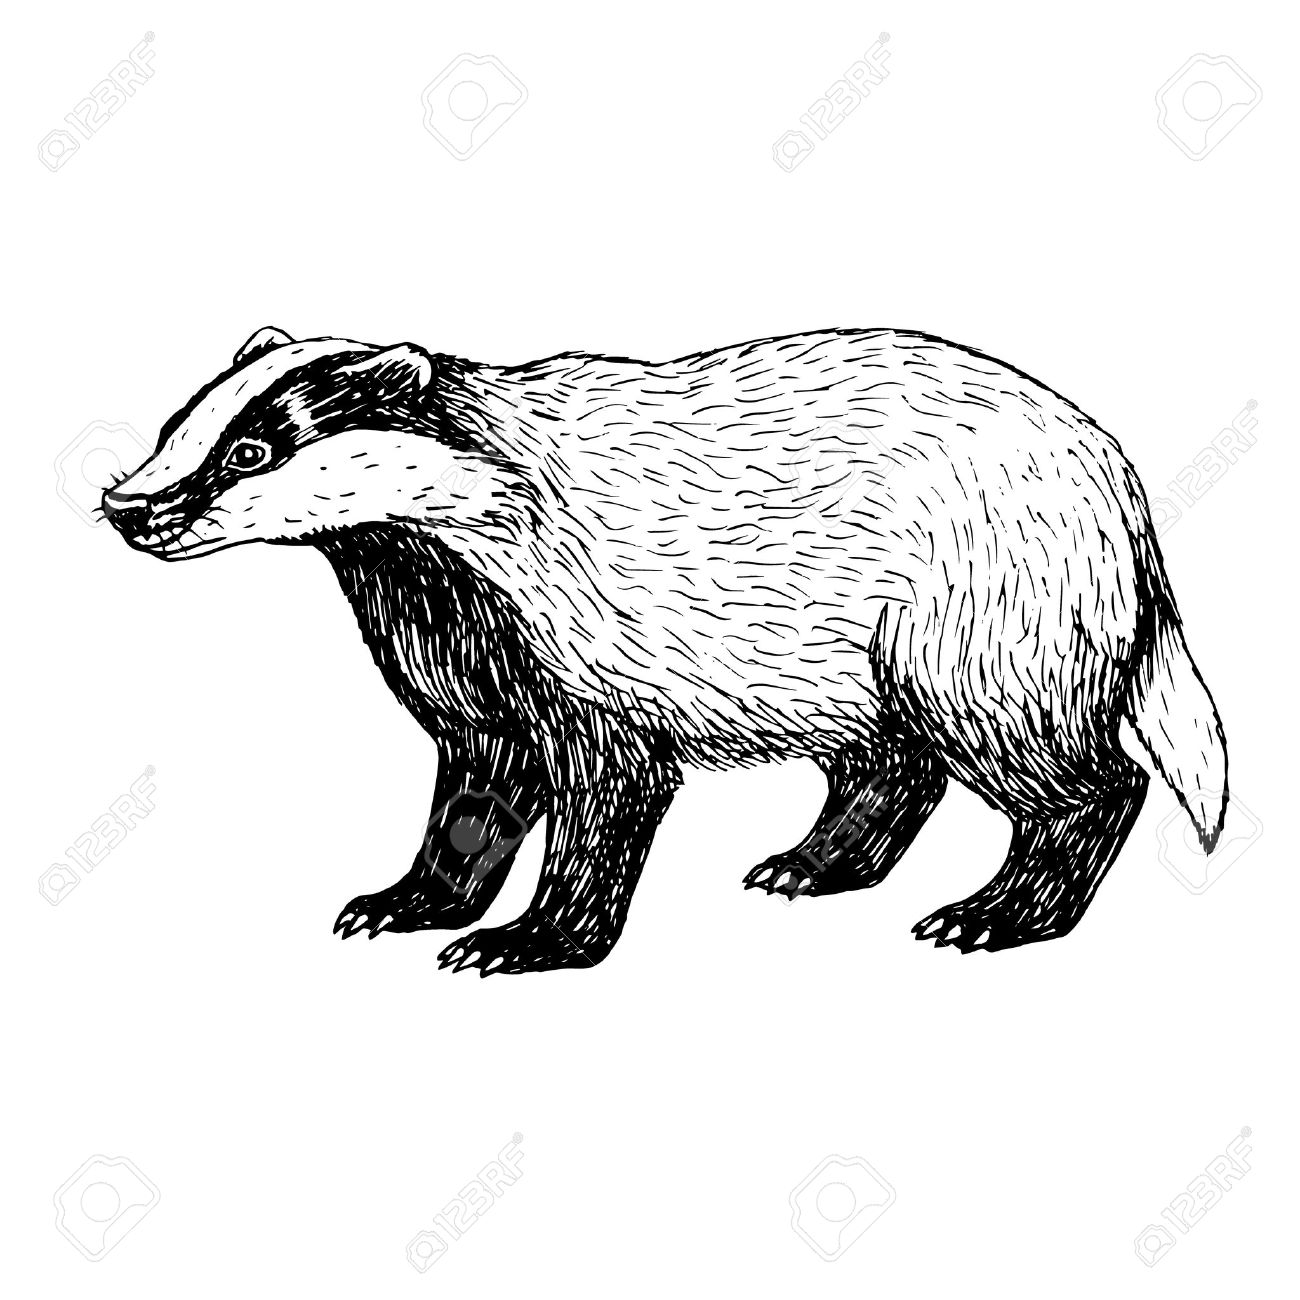 448 Badger free clipart.